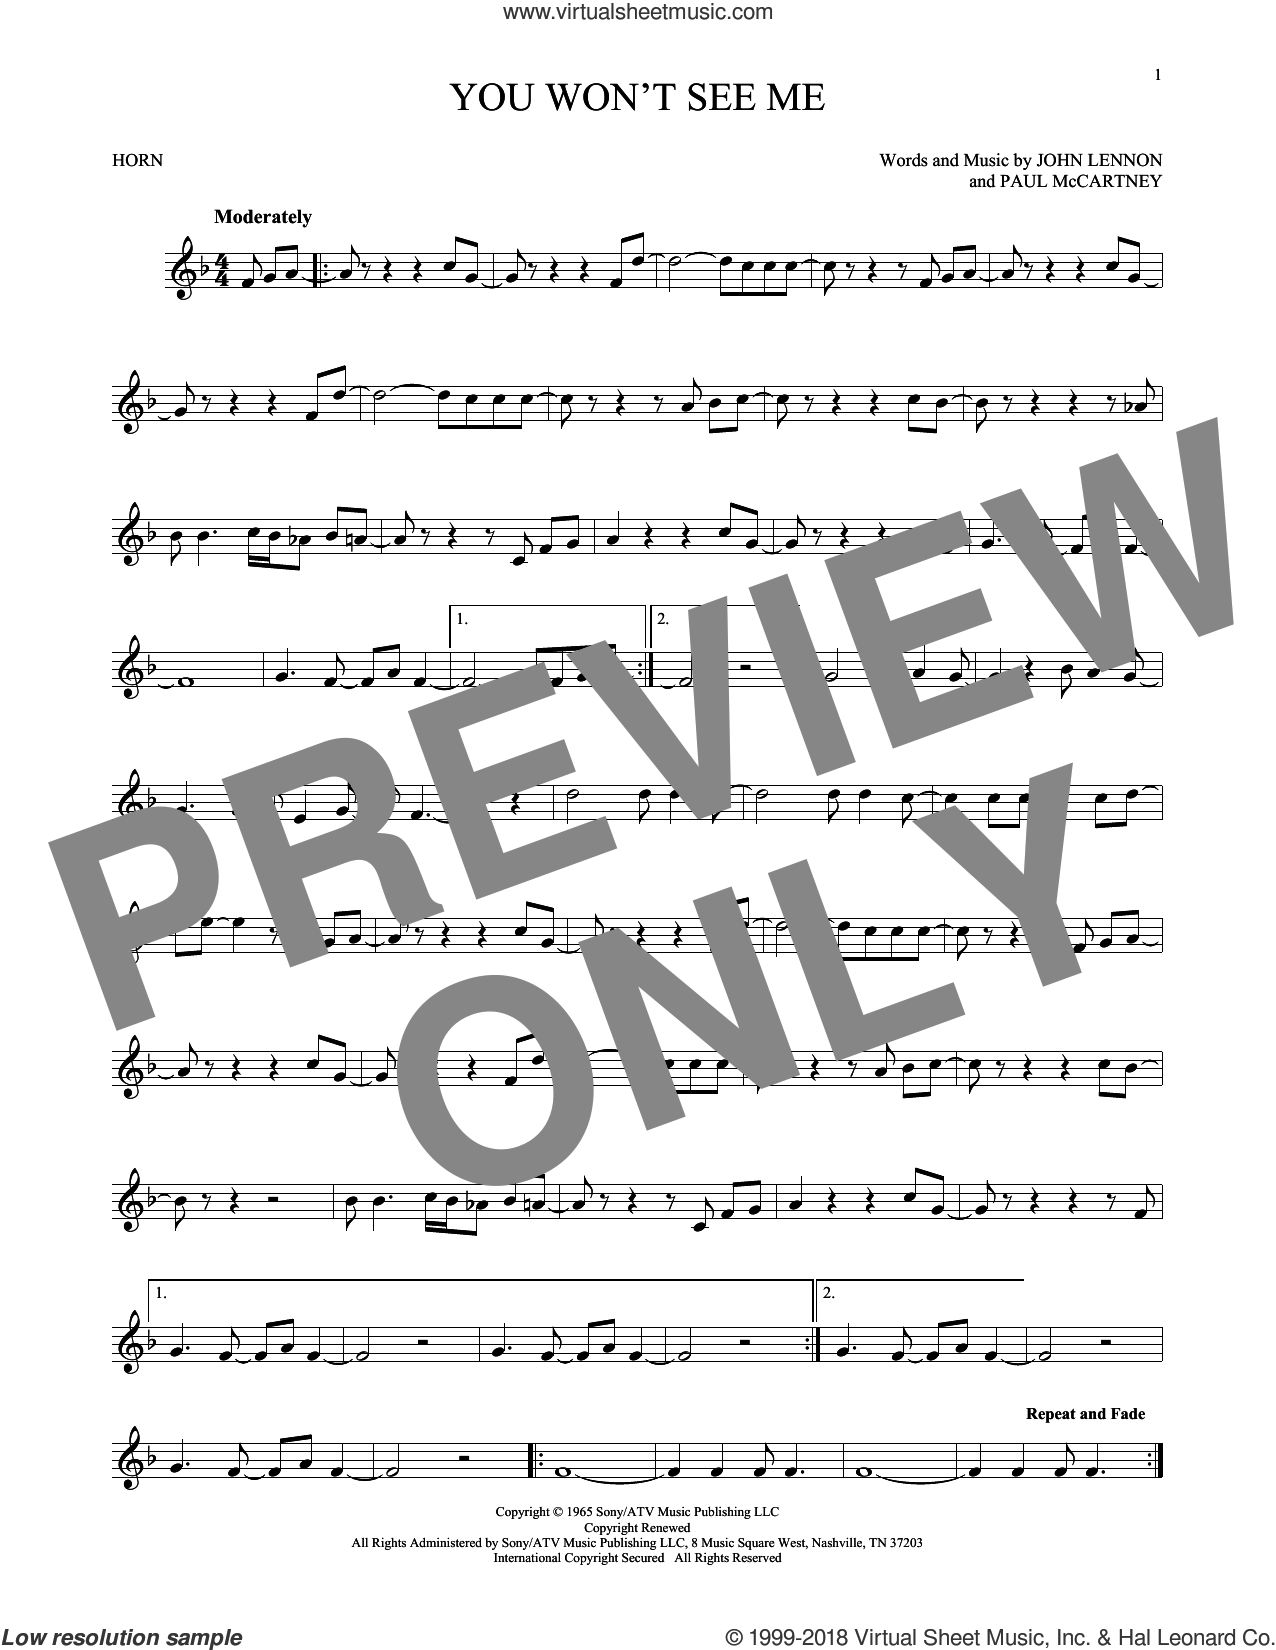 You Won't See Me sheet music for horn solo by The Beatles, John Lennon and Paul McCartney, intermediate horn. Score Image Preview.